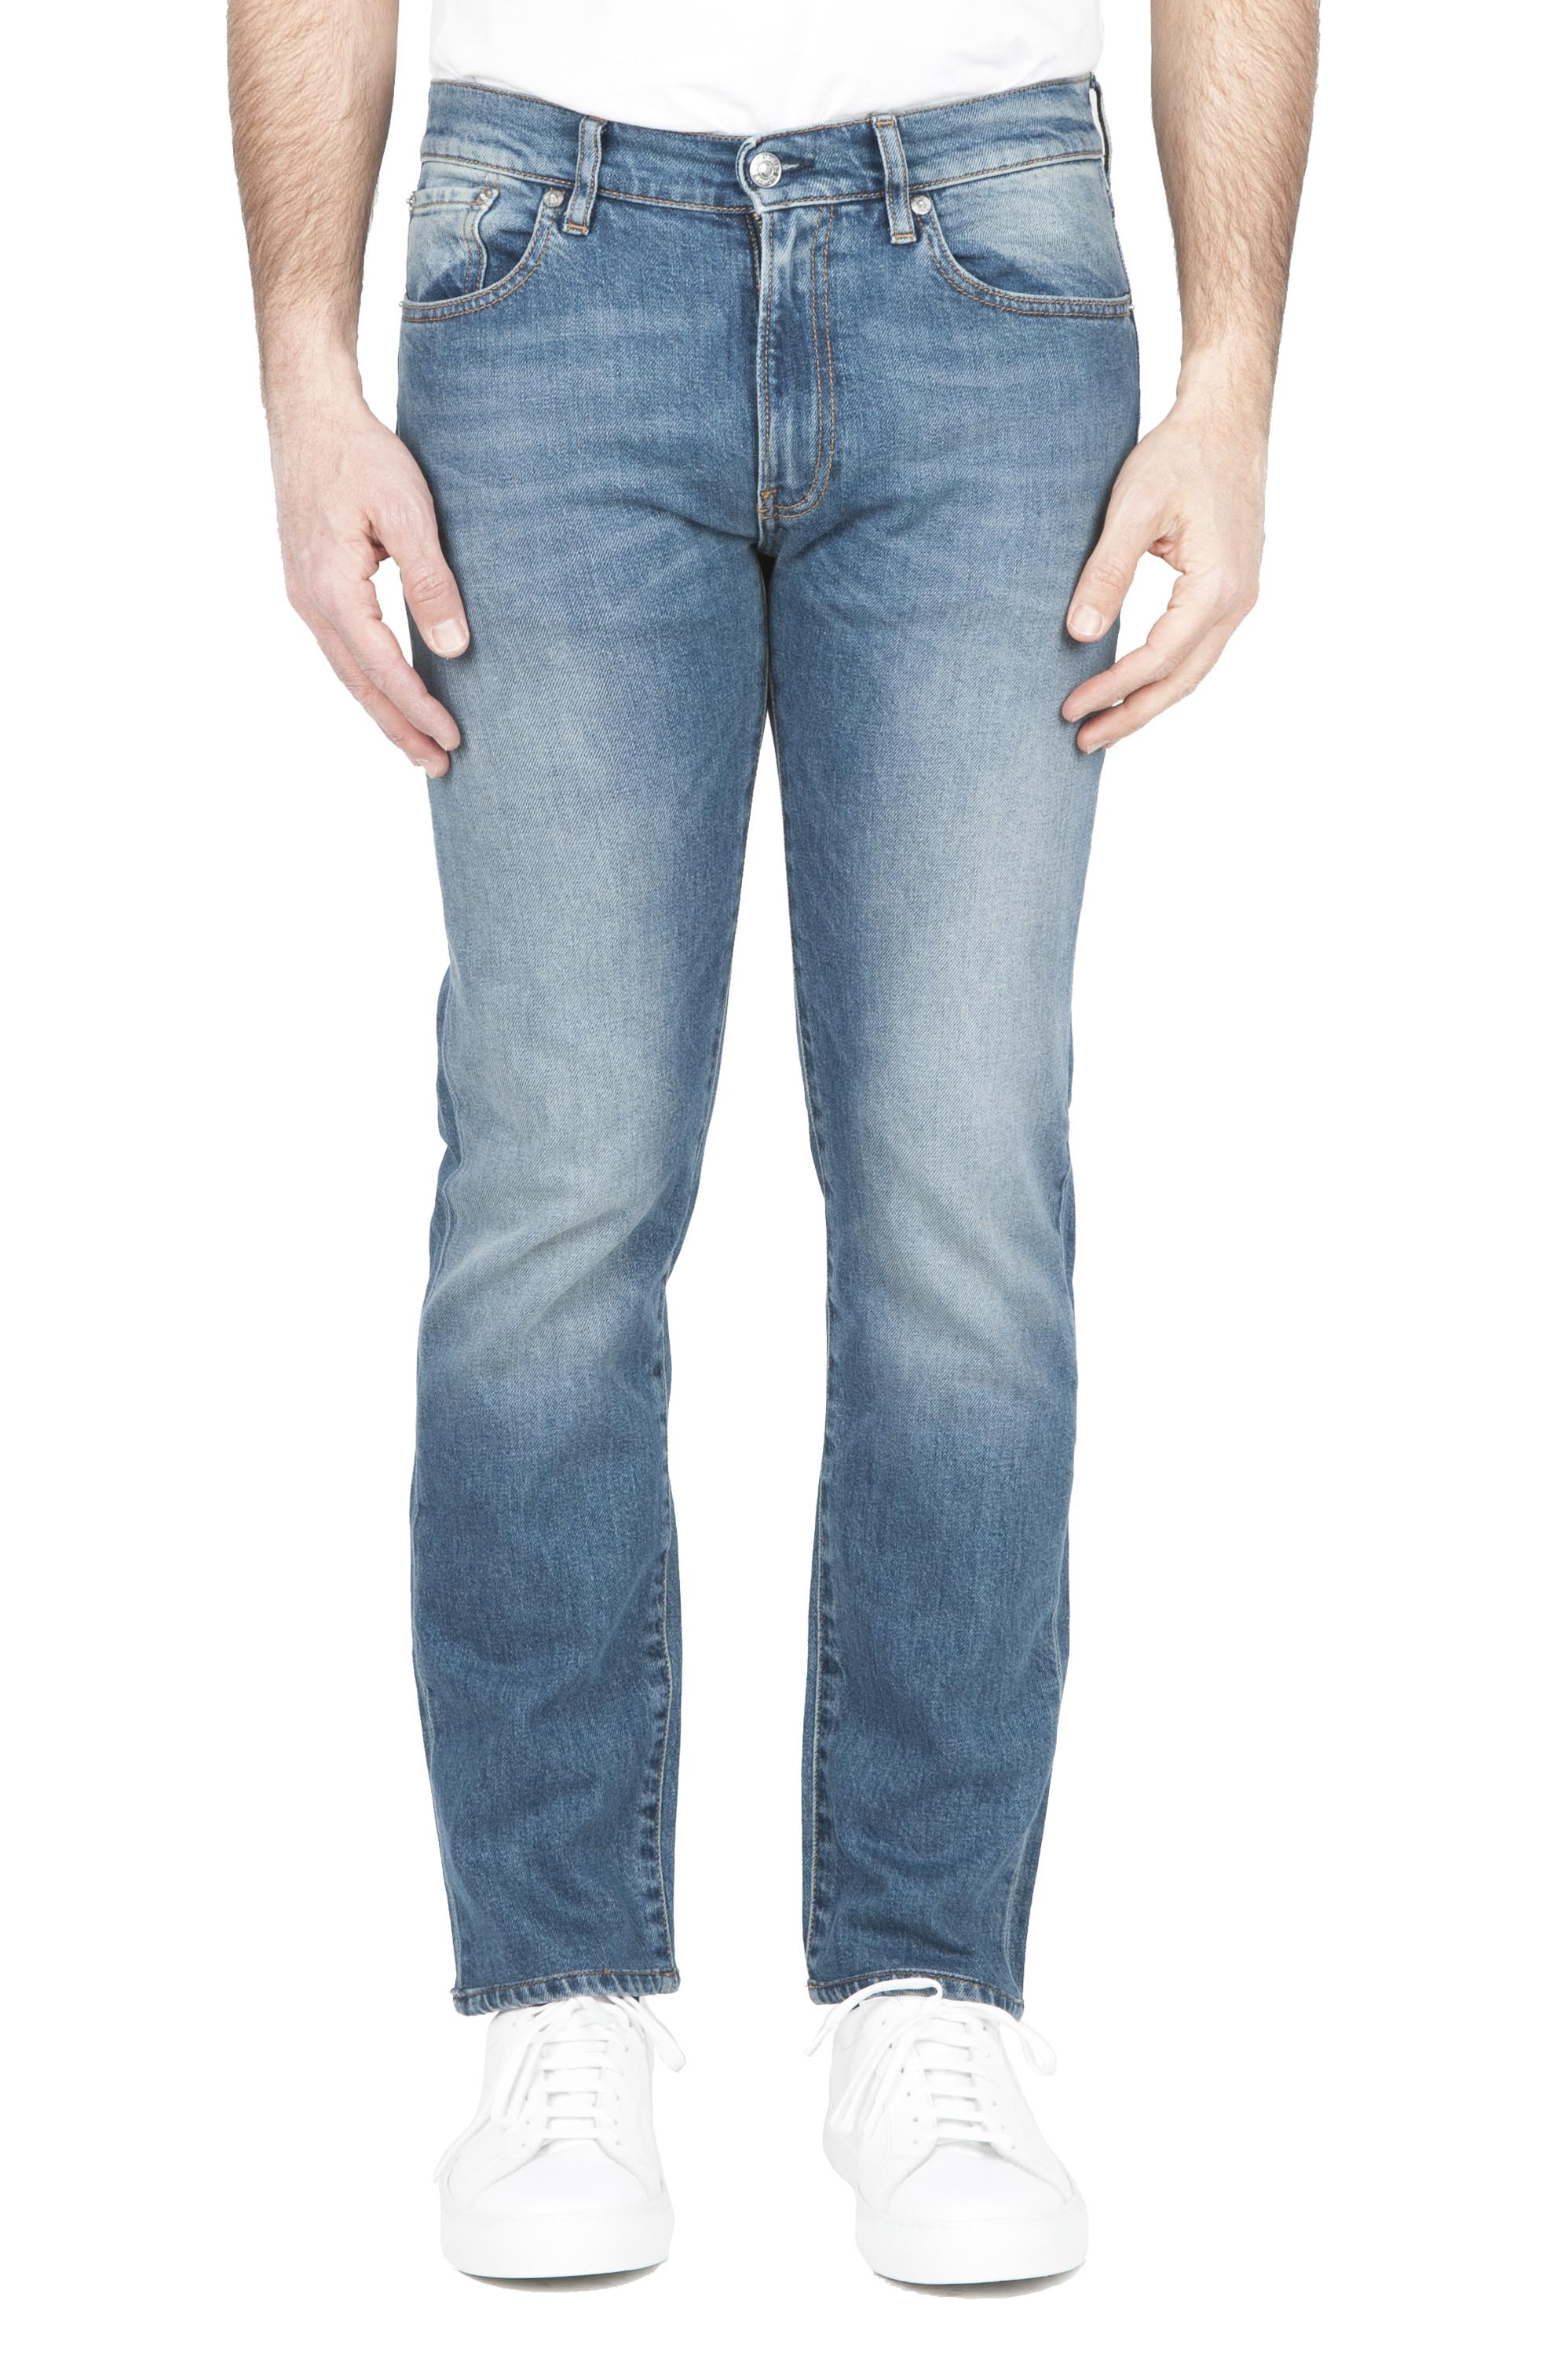 SBU 01450 Pure indigo dyed stone bleached stretch cotton blue jeans 01